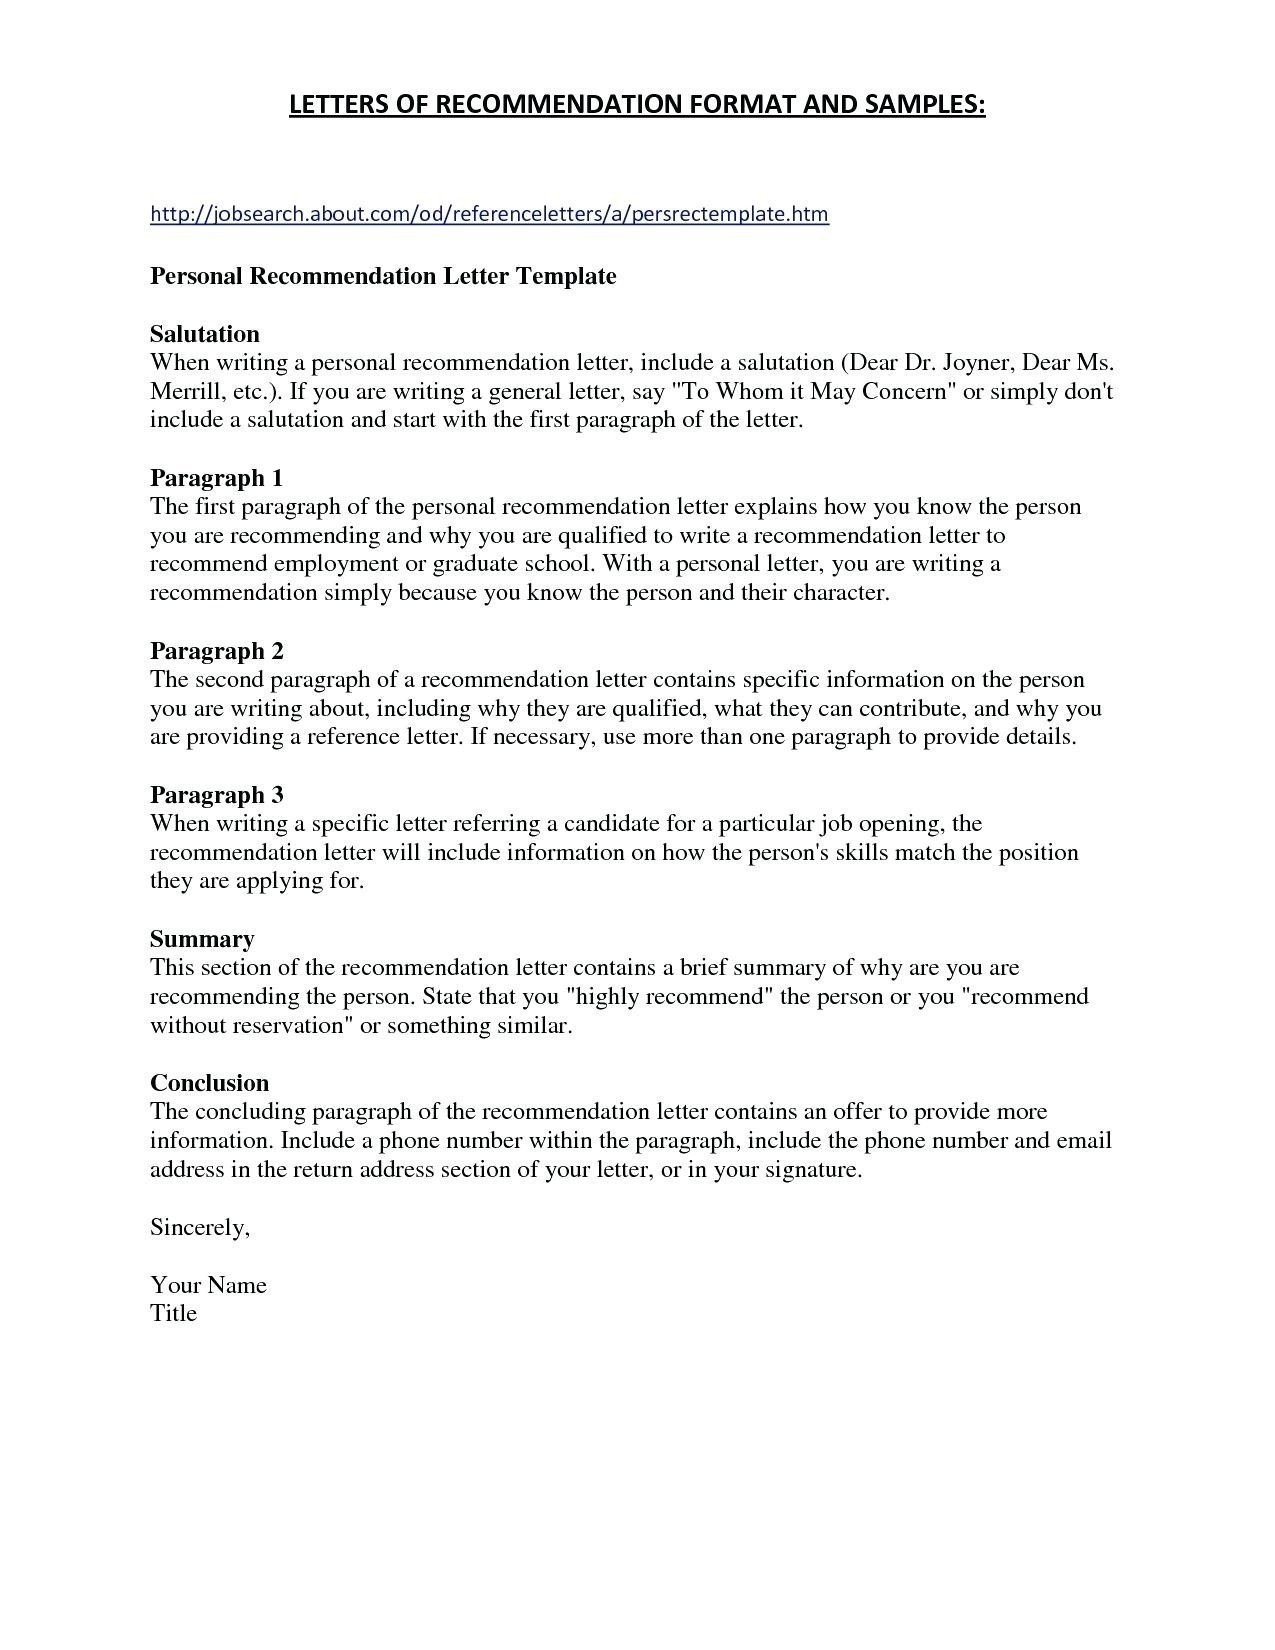 Personal Reference Letter for A Friend Template - French Sample Letters to A Friend New Reference Letter Samples Fresh